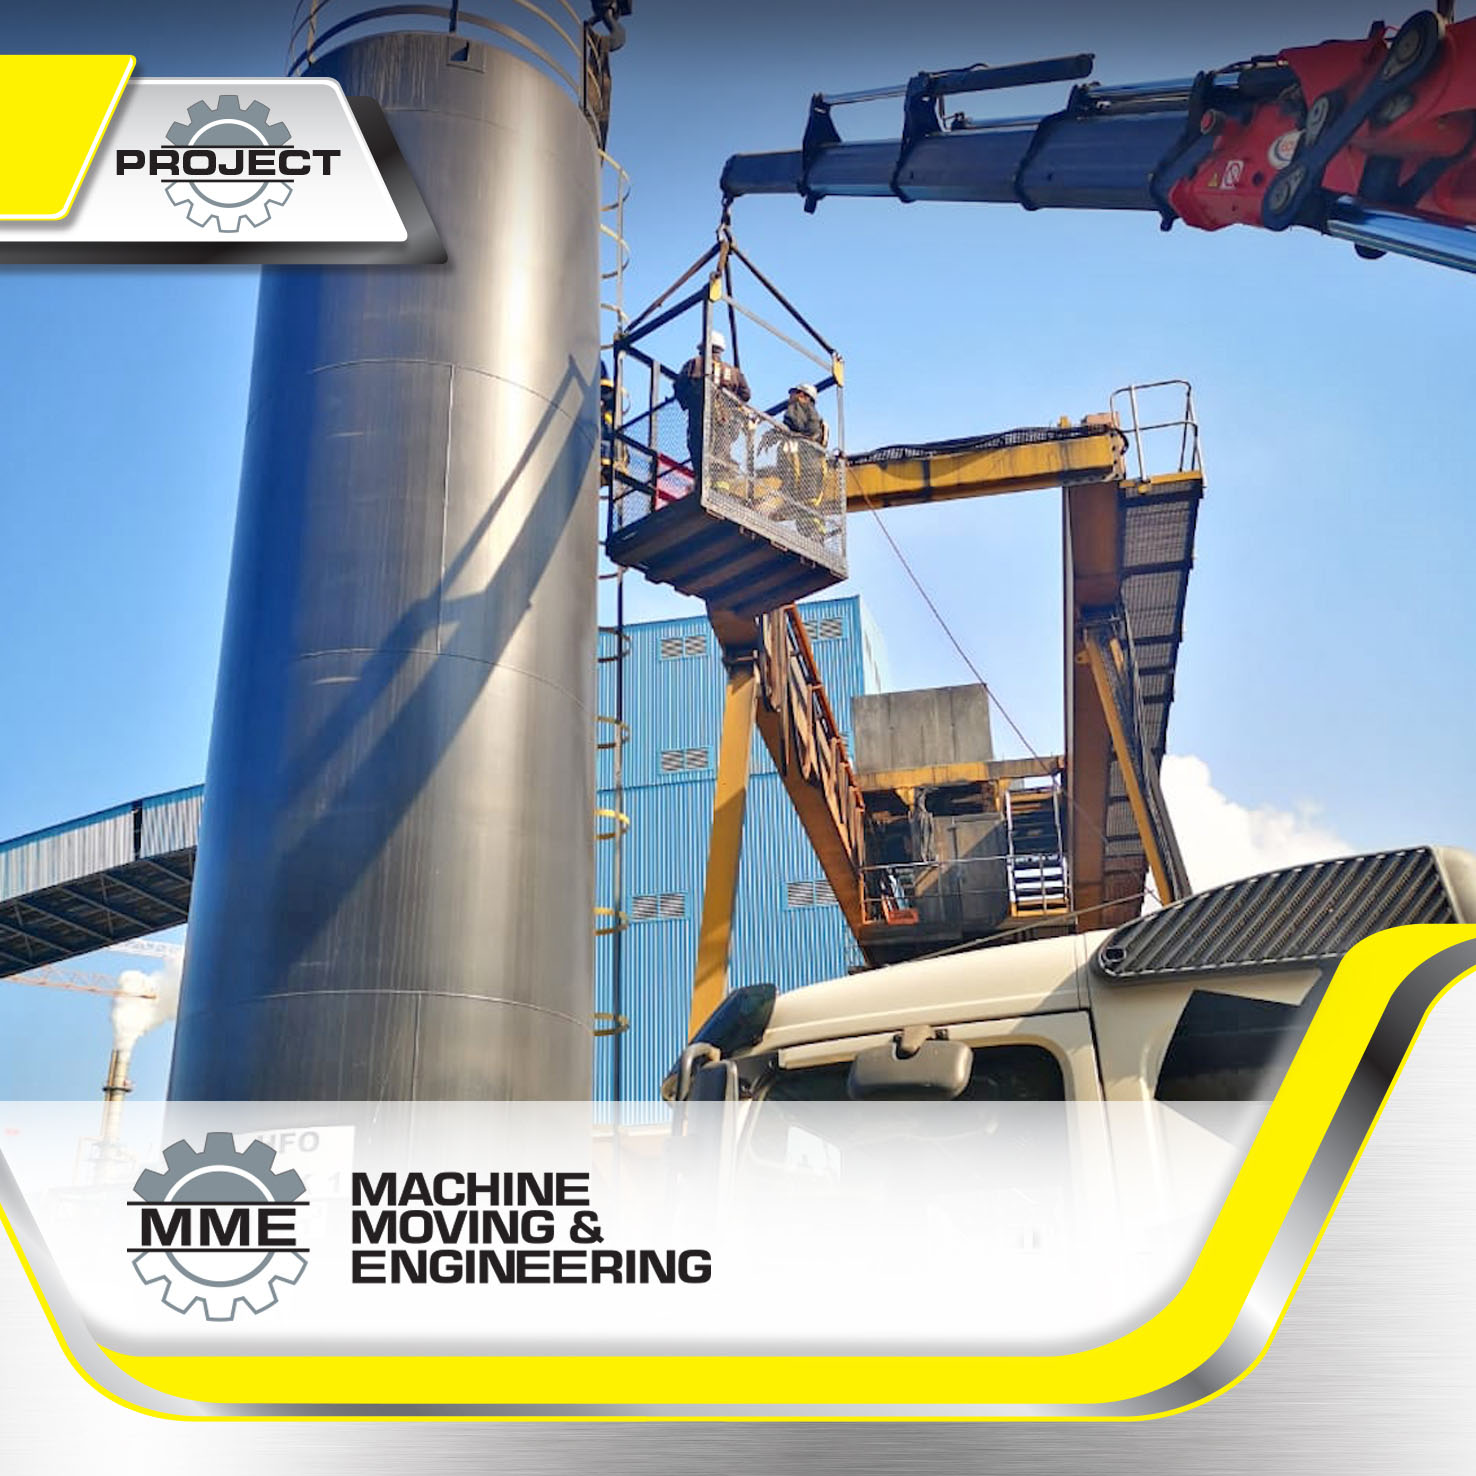 replacement of a cat ladder mme-projects-mme-machine-moving-engineering-machinery-equipment-gauteng-kwazulu-natal-south-africa-tank